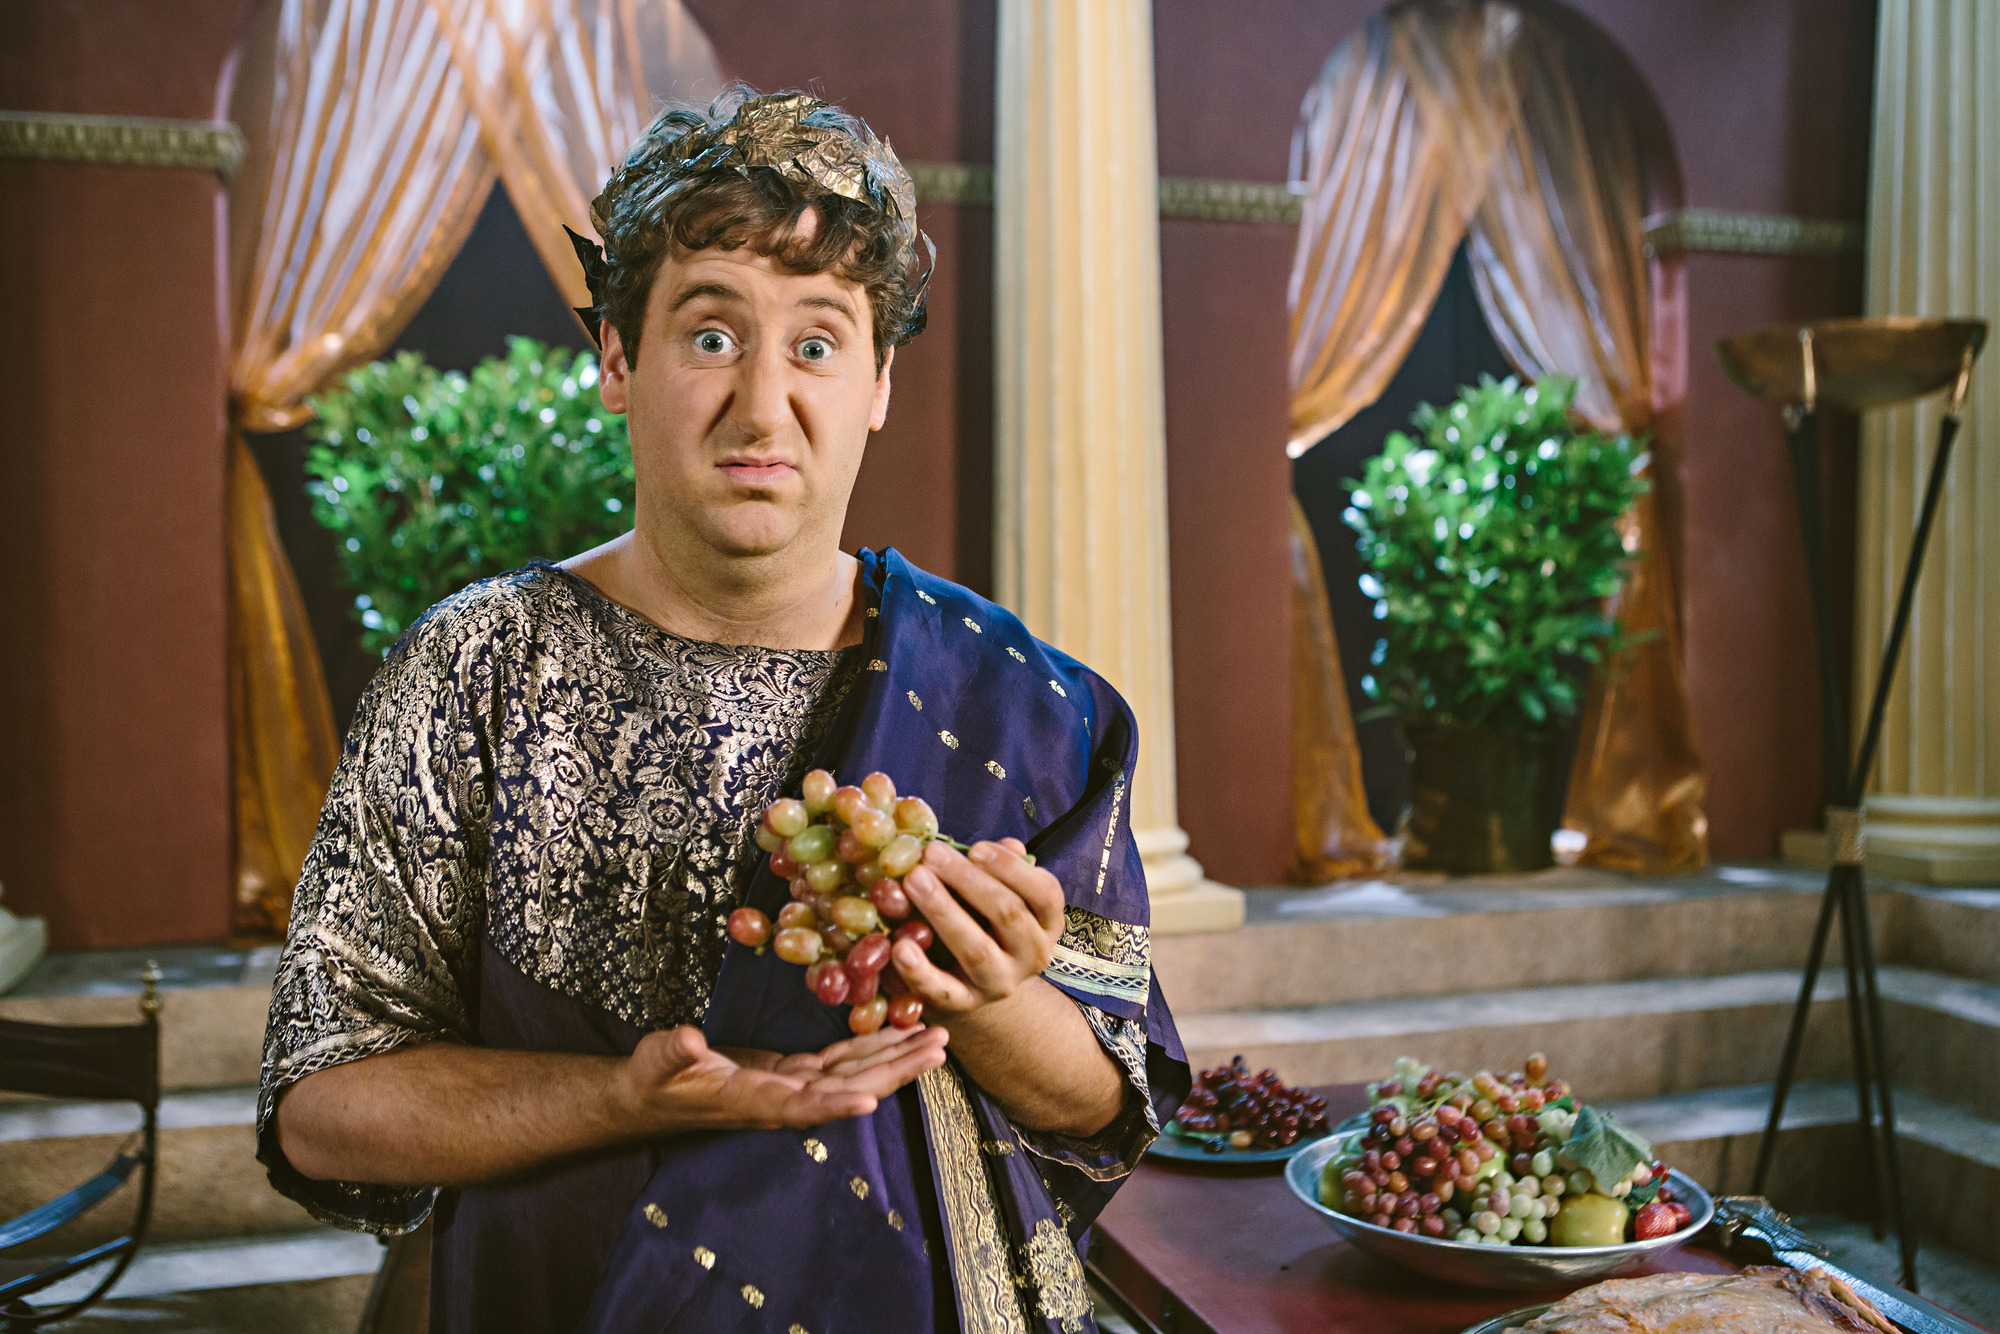 Horrible Histories mourned after last episode airs